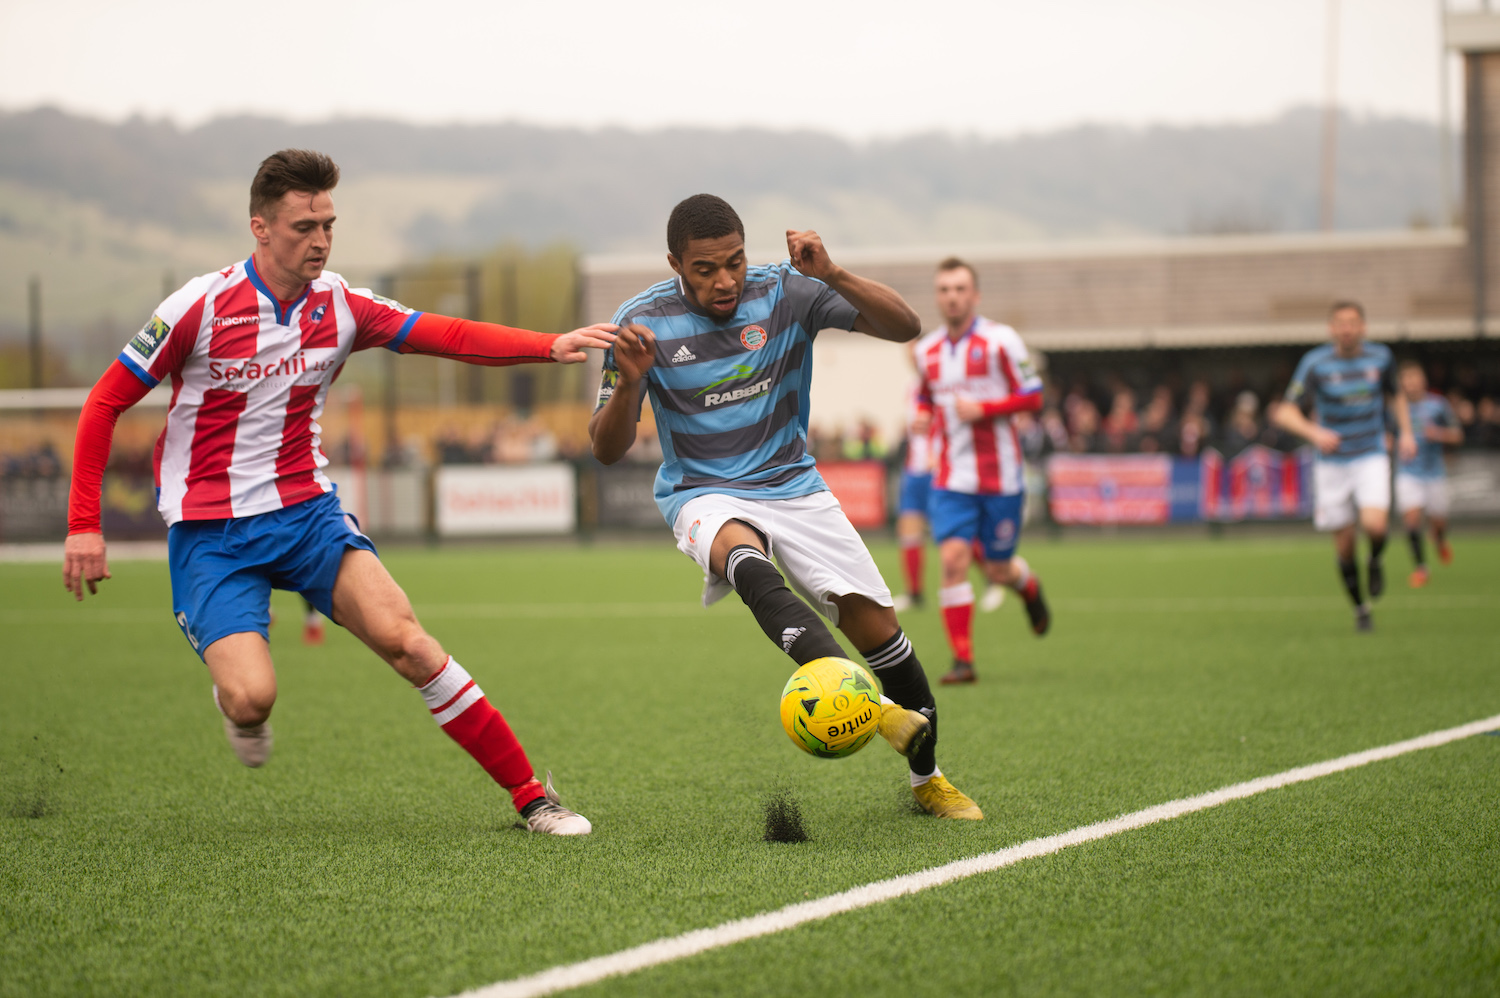 Read the full article - Gallery: Dorking [A] – League